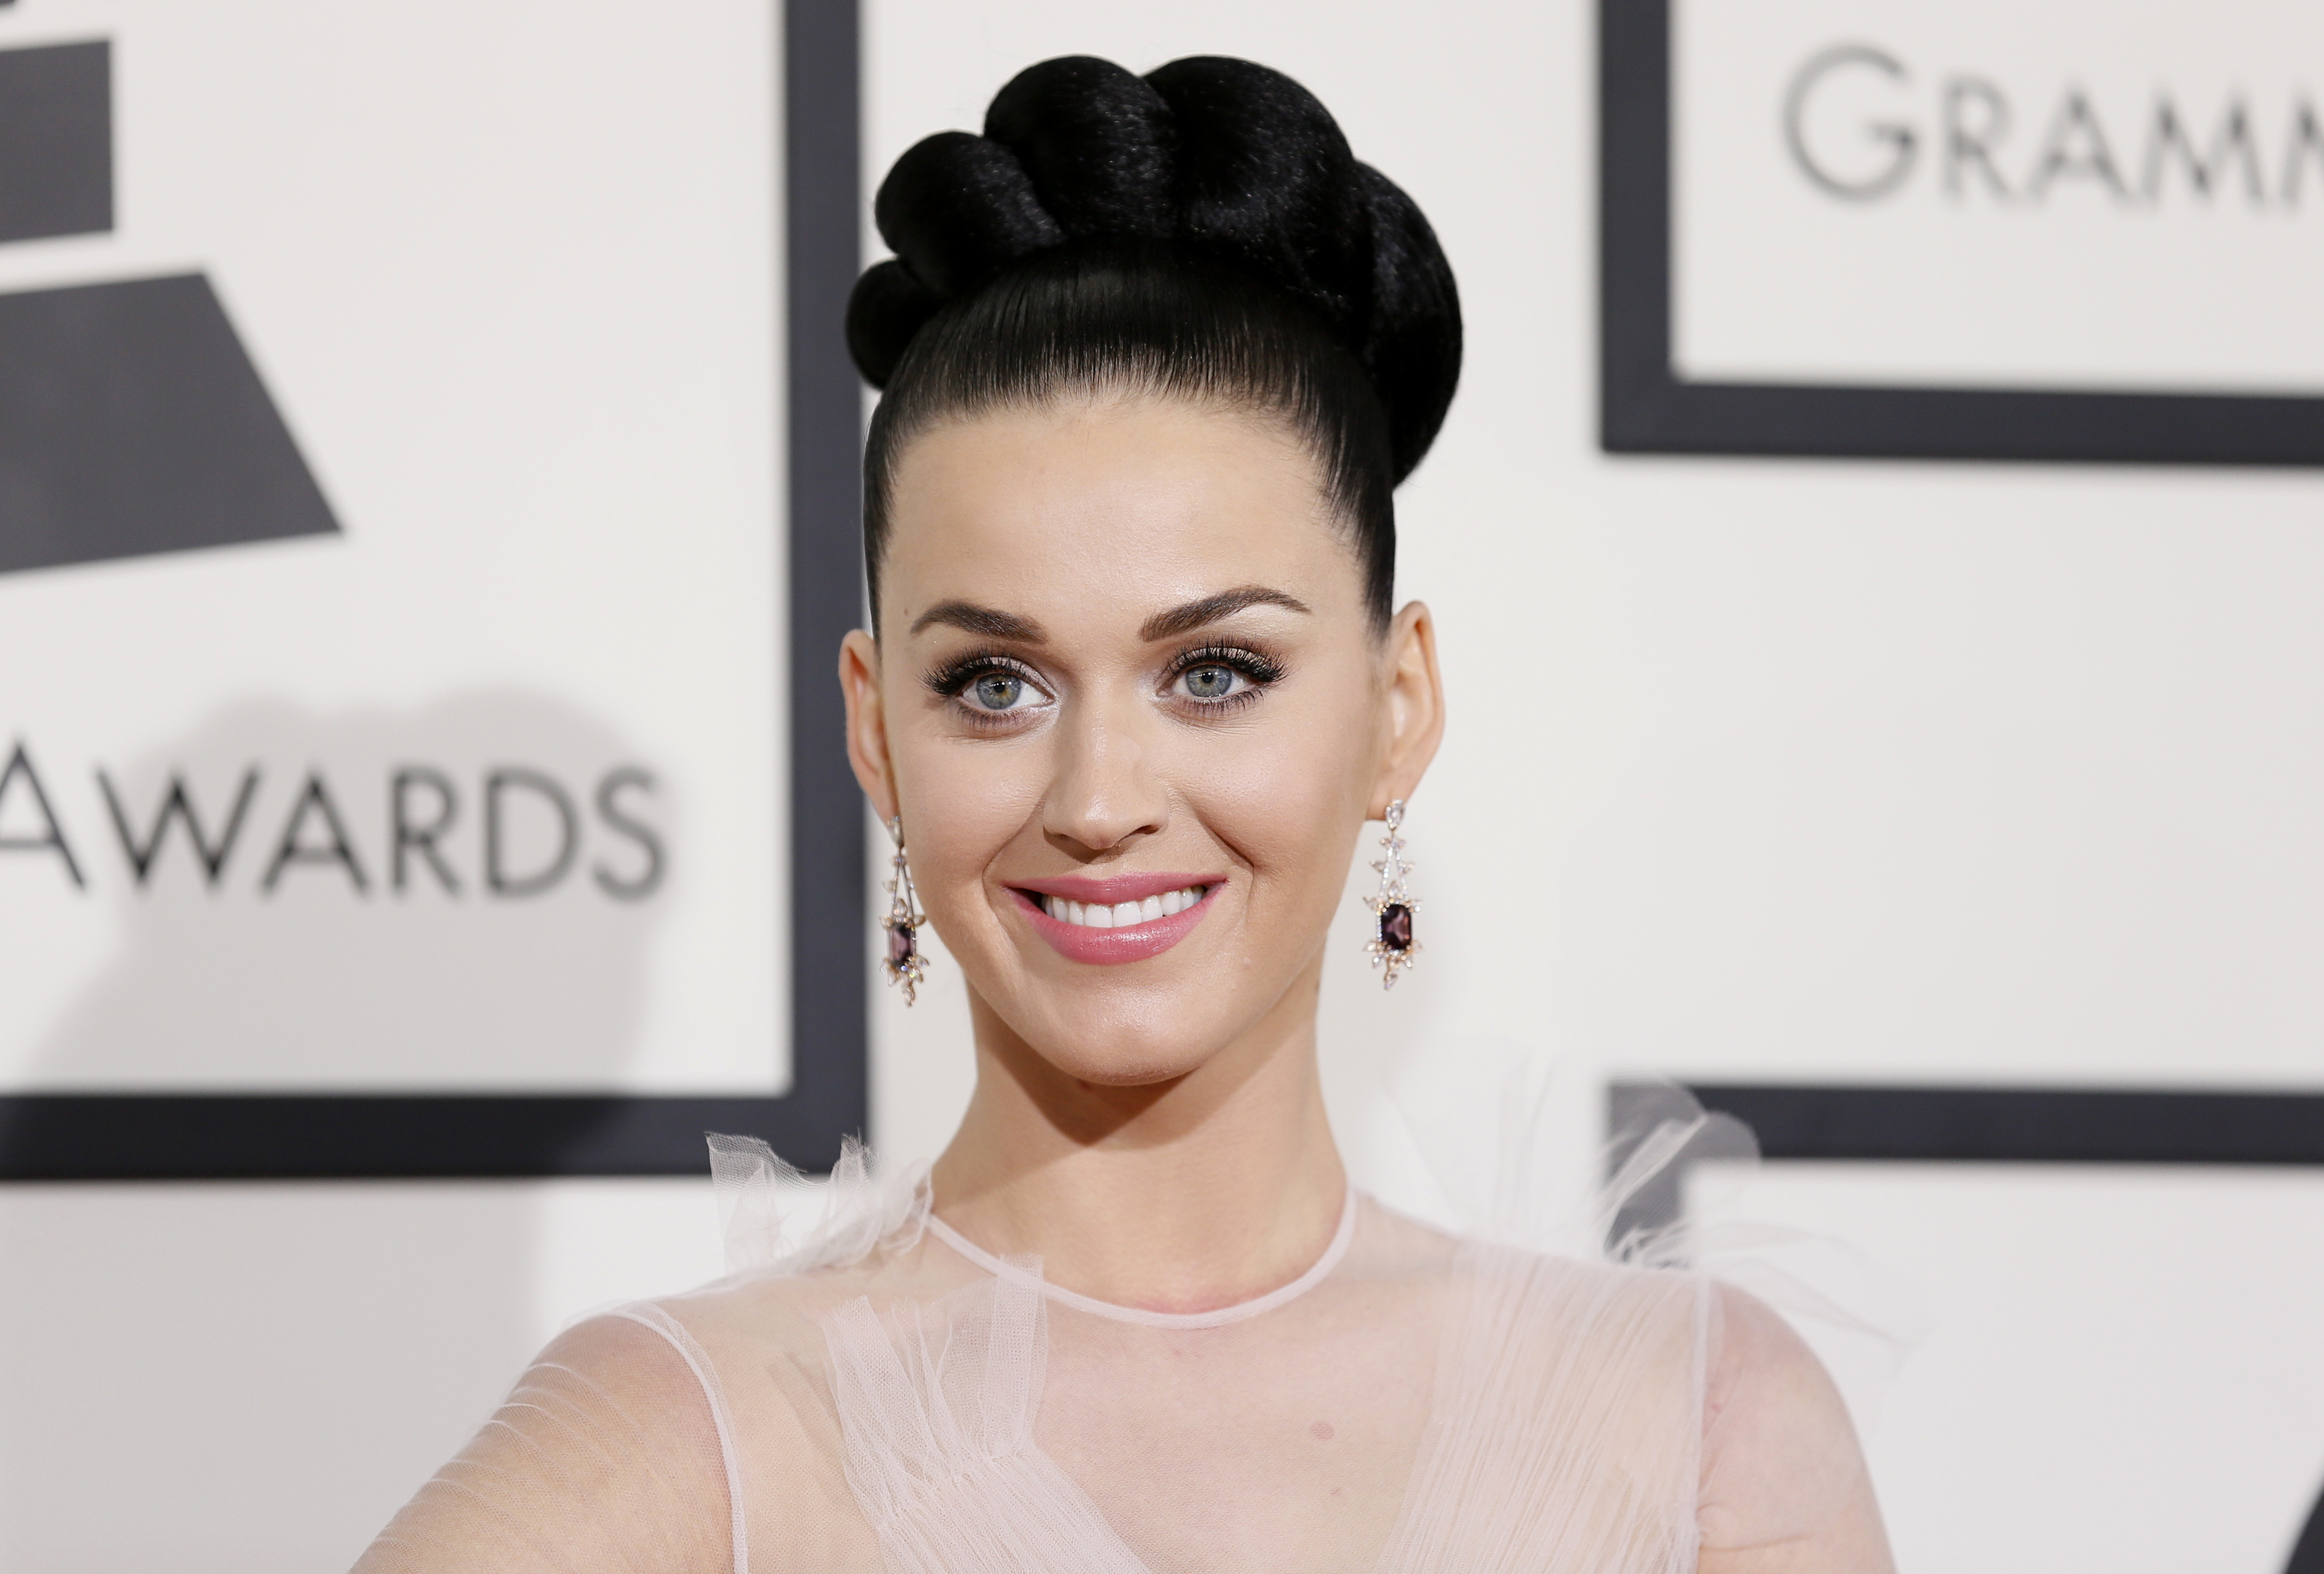 Singer Katy Perry arrives at the 56th annual Grammy Awards in Los Angeles